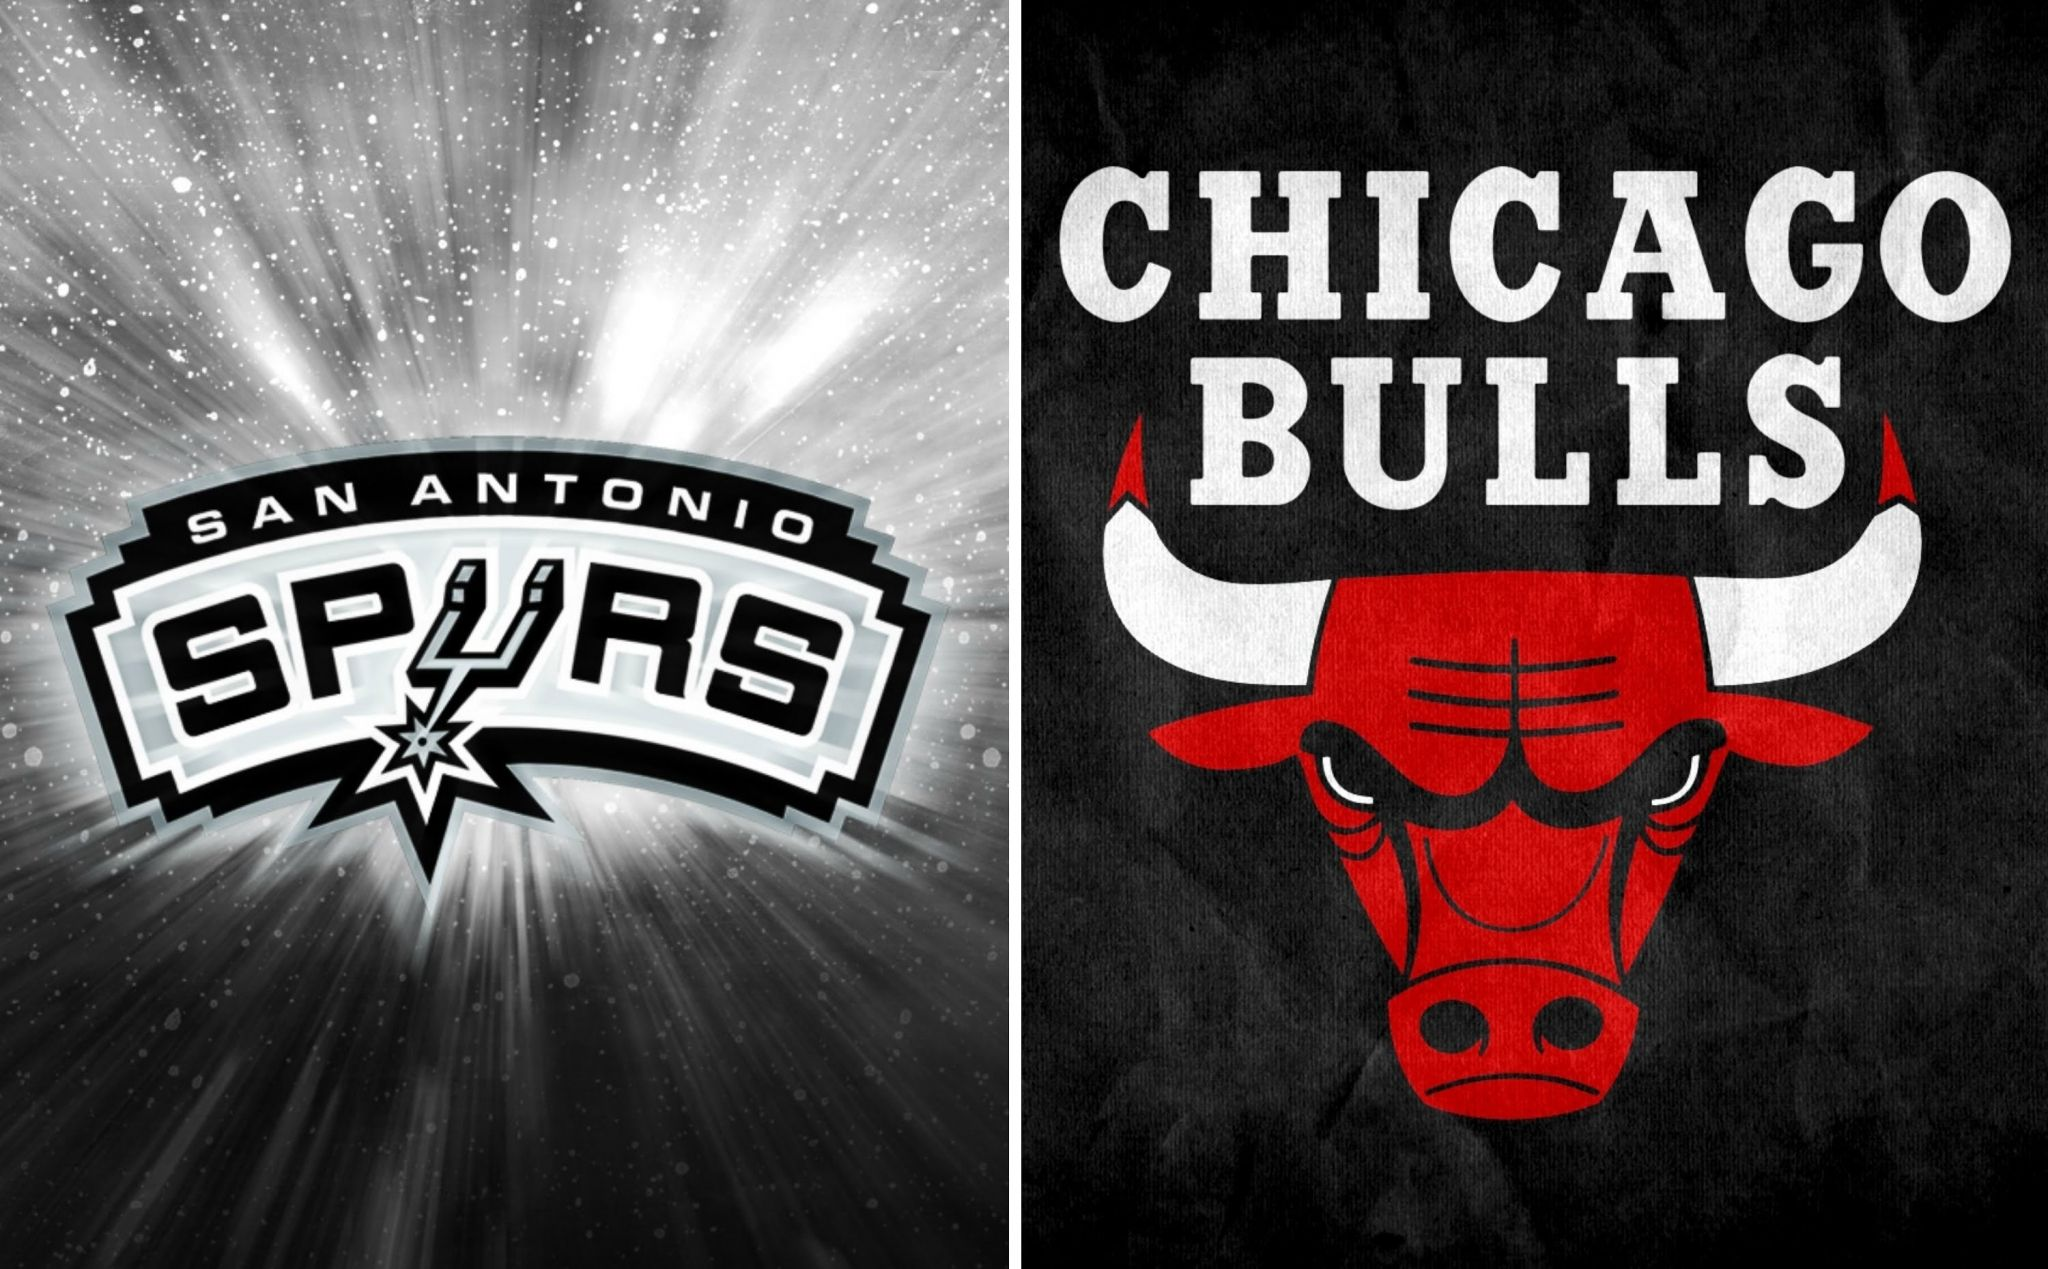 Chicago bulls wallpaper for mac computers sharovarka pinterest chicago bulls wallpaper for mac computers voltagebd Image collections